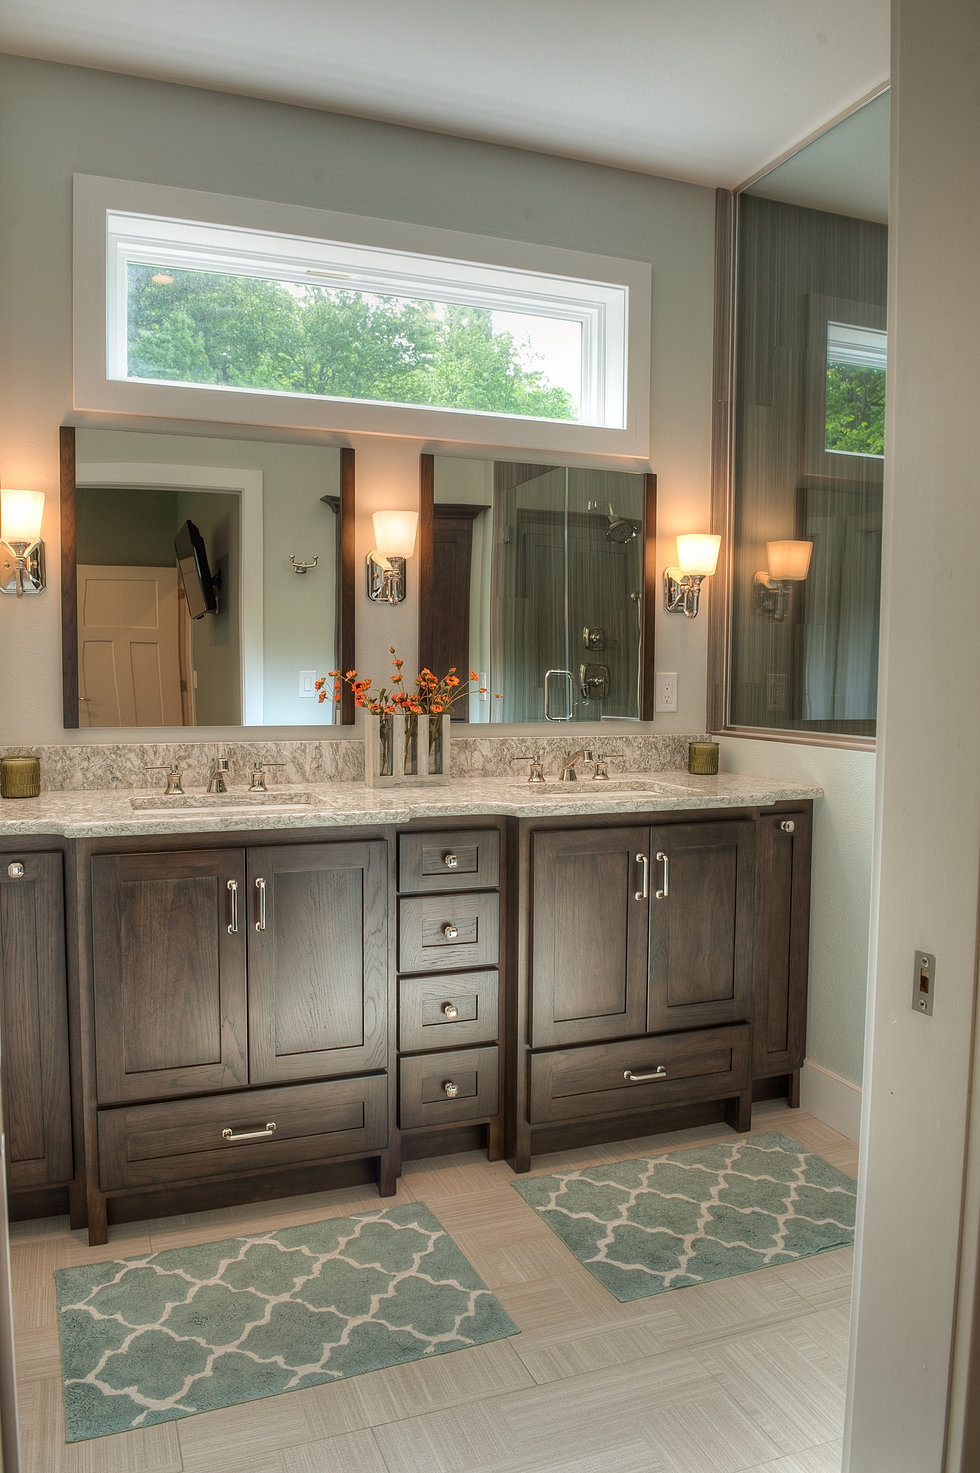 Bathroom Remodeling Wausau Wi inspireddesign, llc - interior design, wausau wisconsin